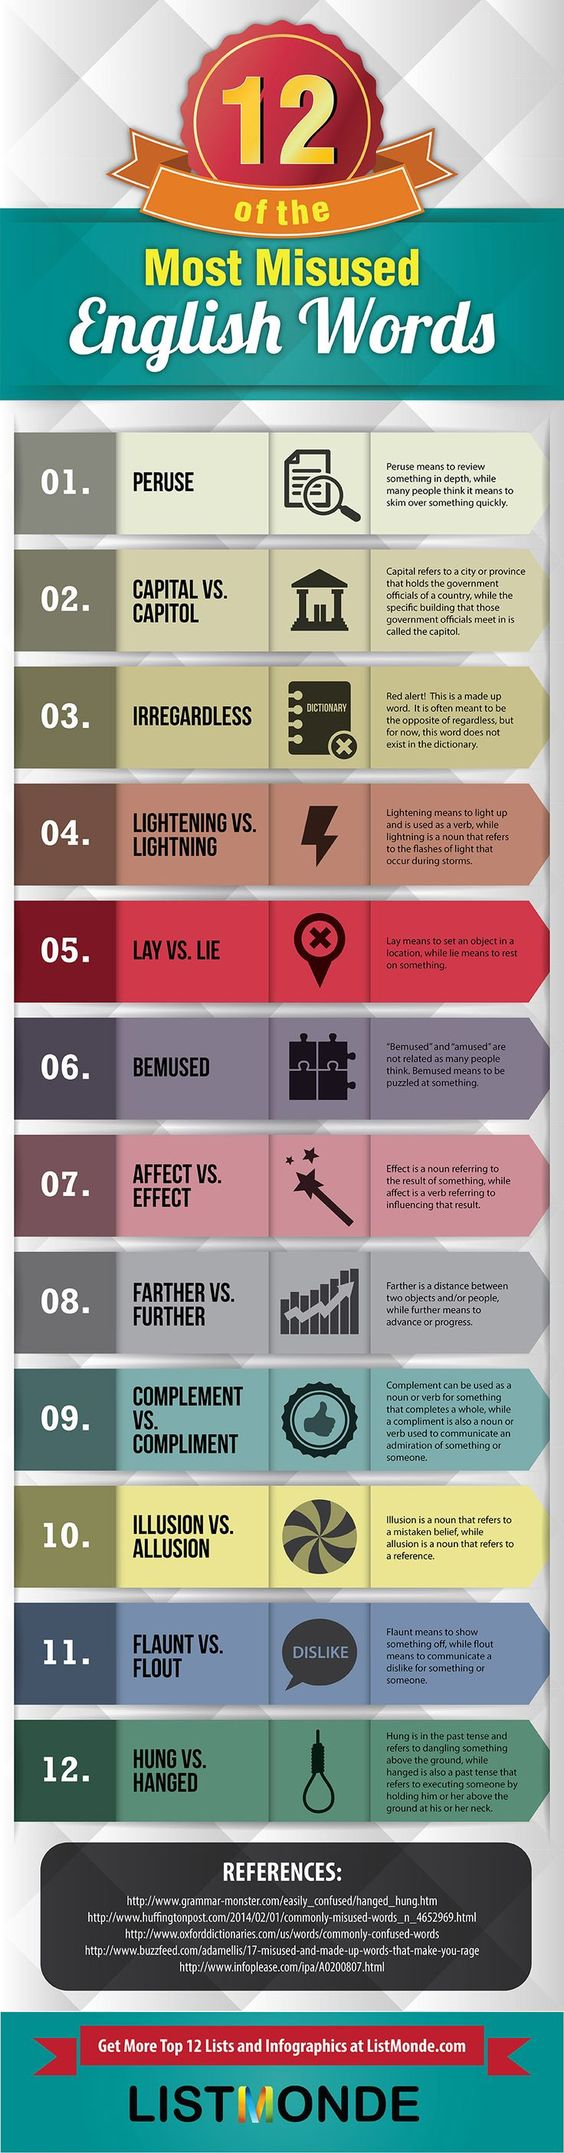 ListMonde, a blog for curious minds,has just released a great infographic with12 English words that are most wrongly used. The list is…: